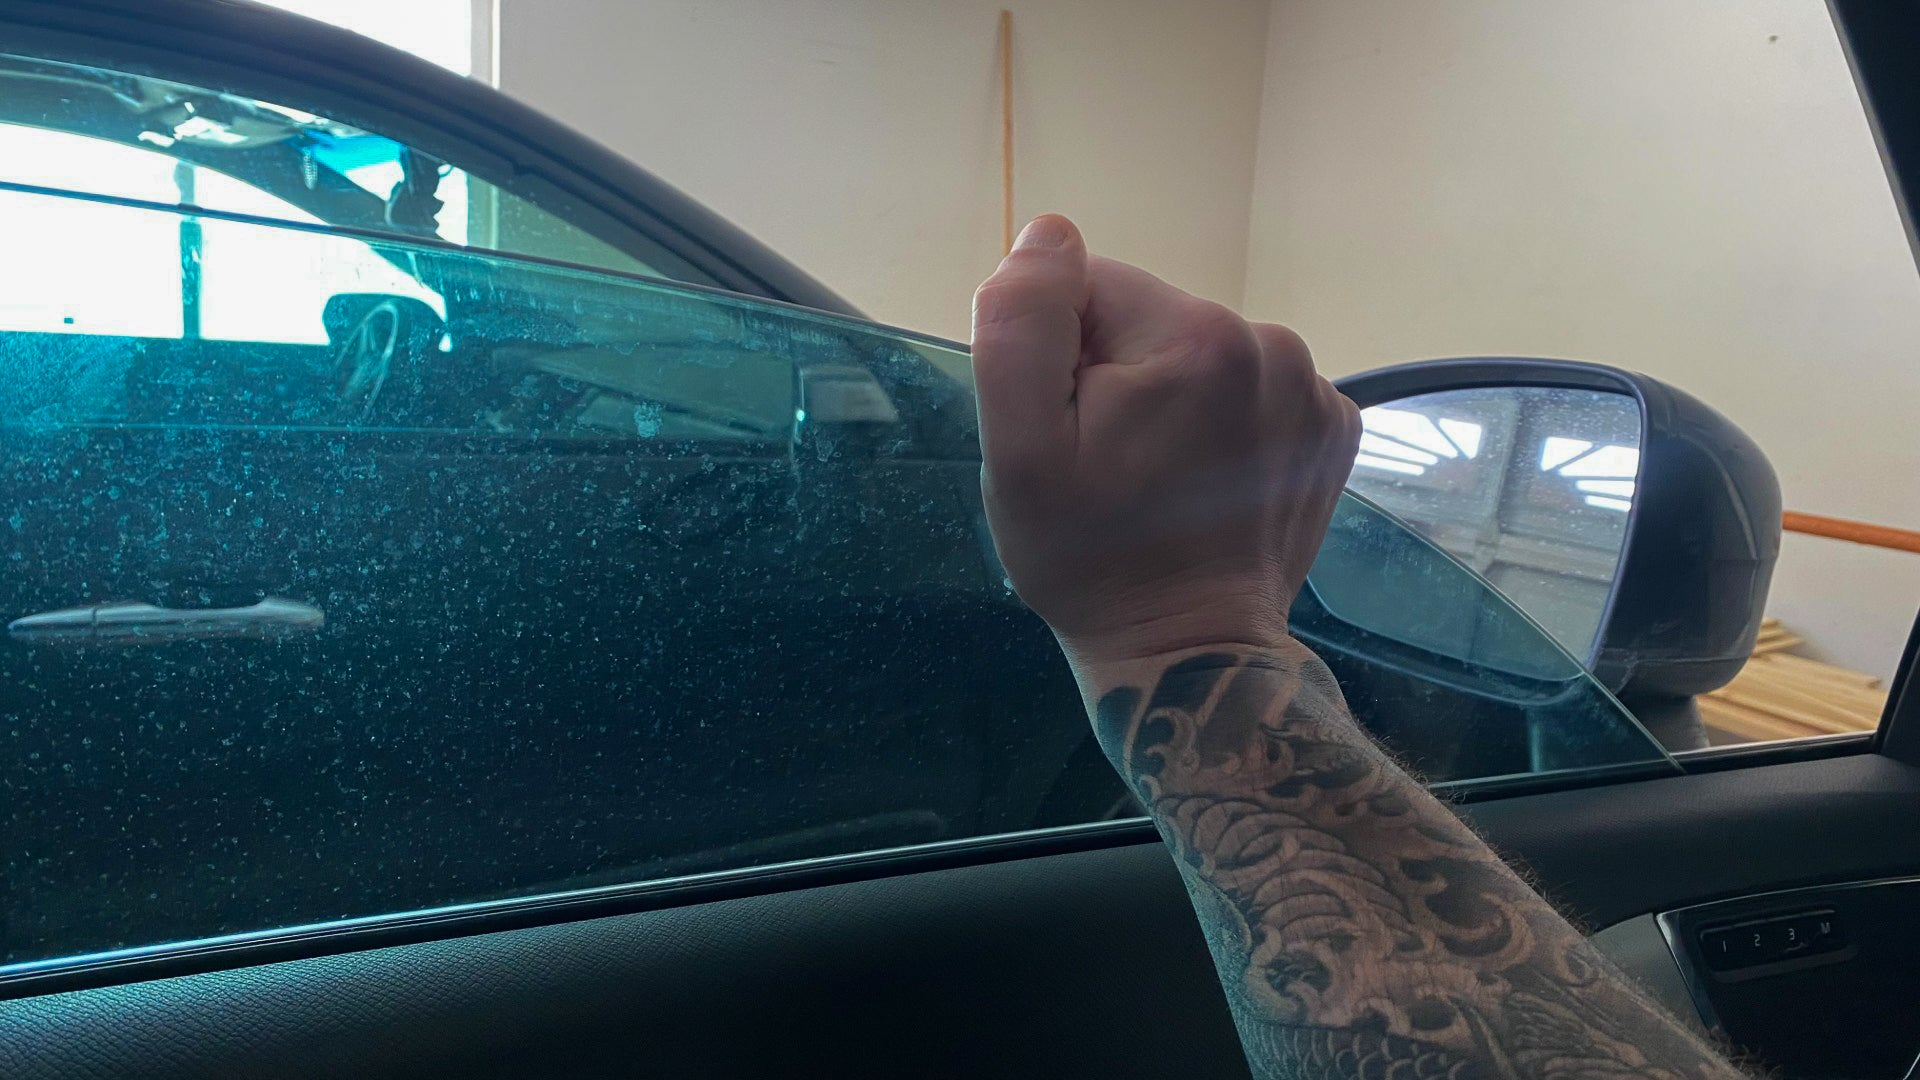 Trying to pull up a stuck window.